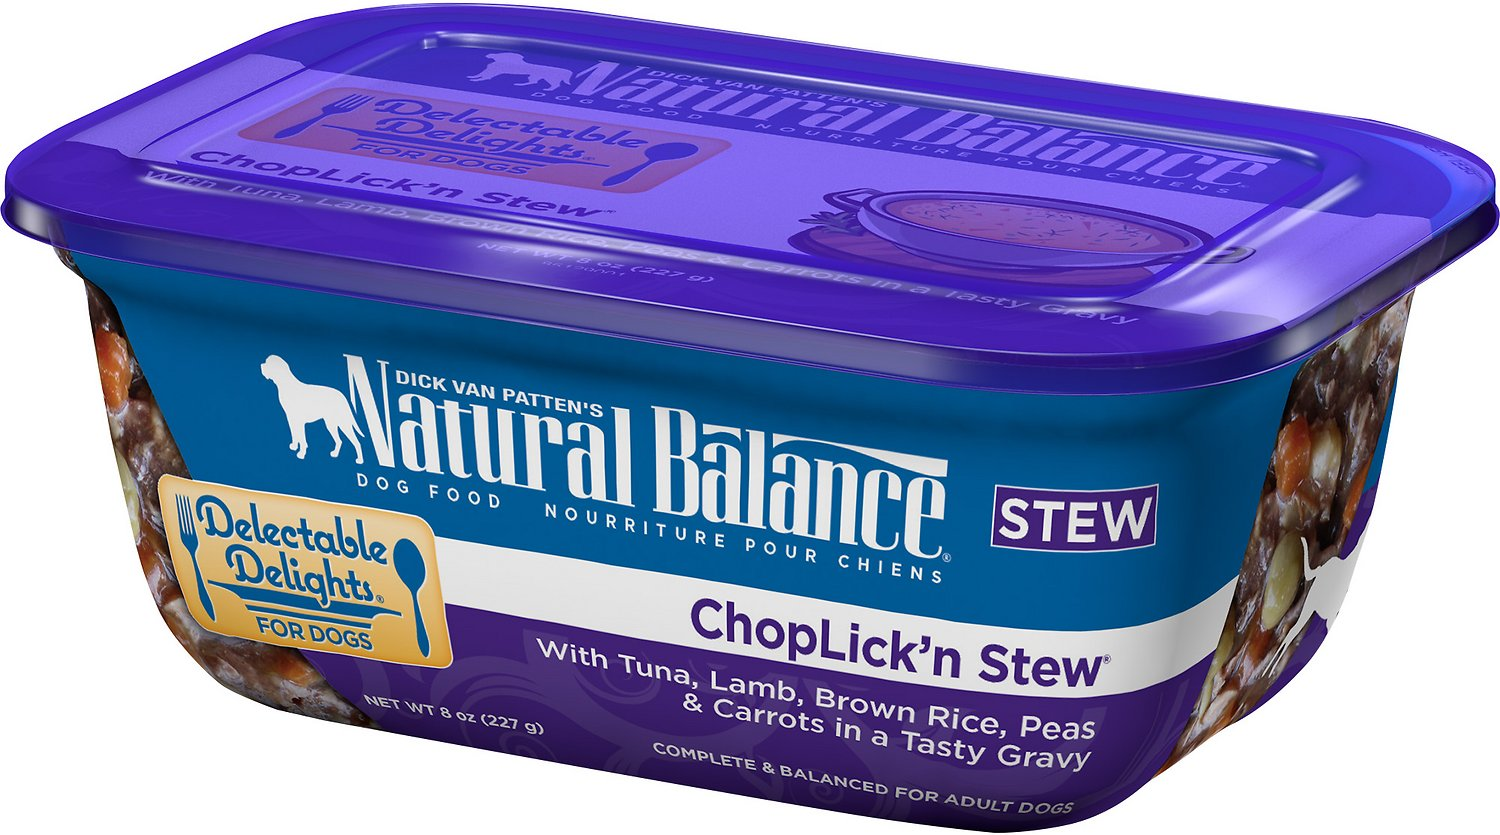 Natural Balance Delectable Delights Dog Food